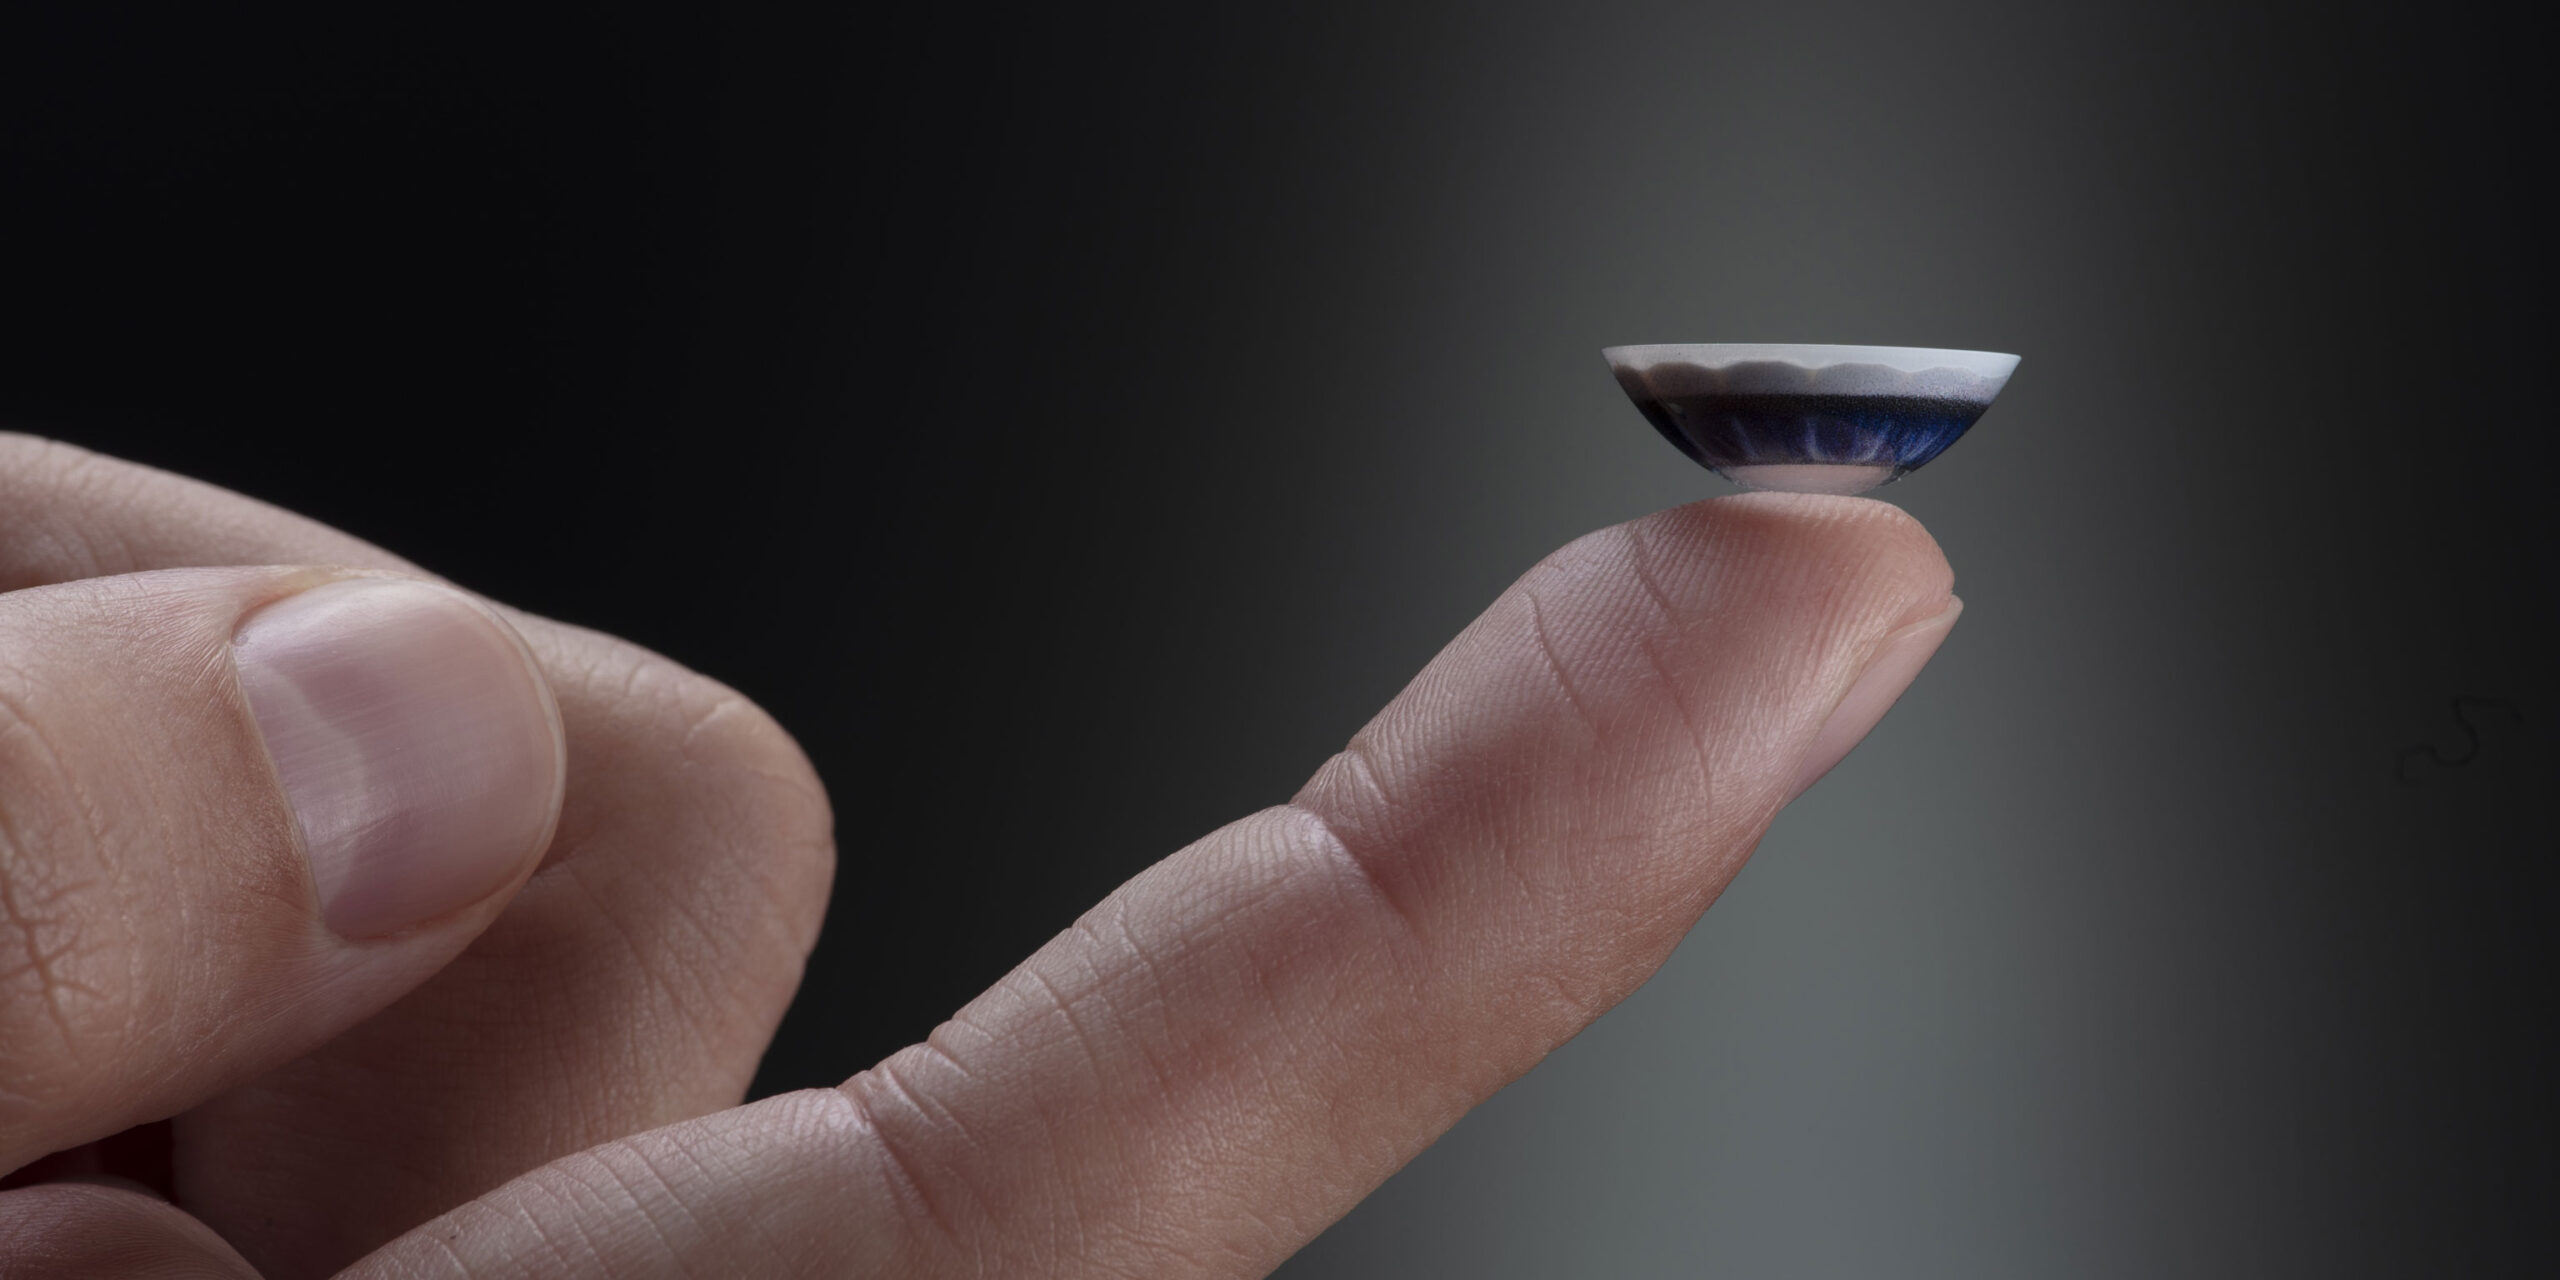 MojoLens smart contact lens balancing on a finger